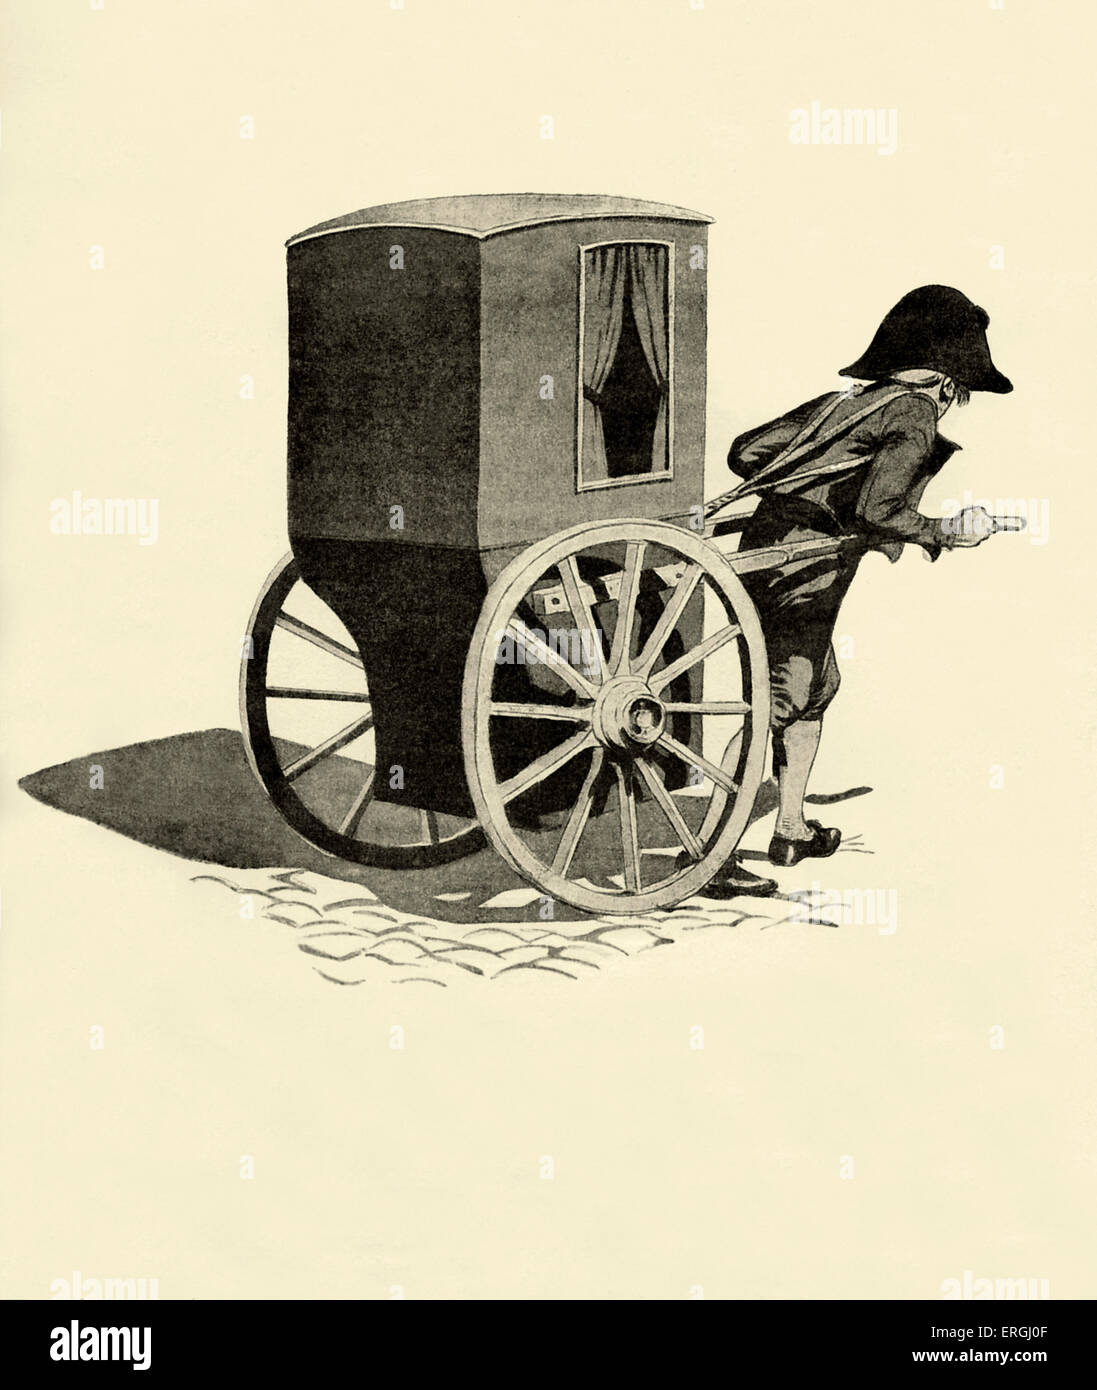 18th century vinaigrette (two wheeled carriage) in France. Invented in 17th century. Used until 20th century as Stock Photo